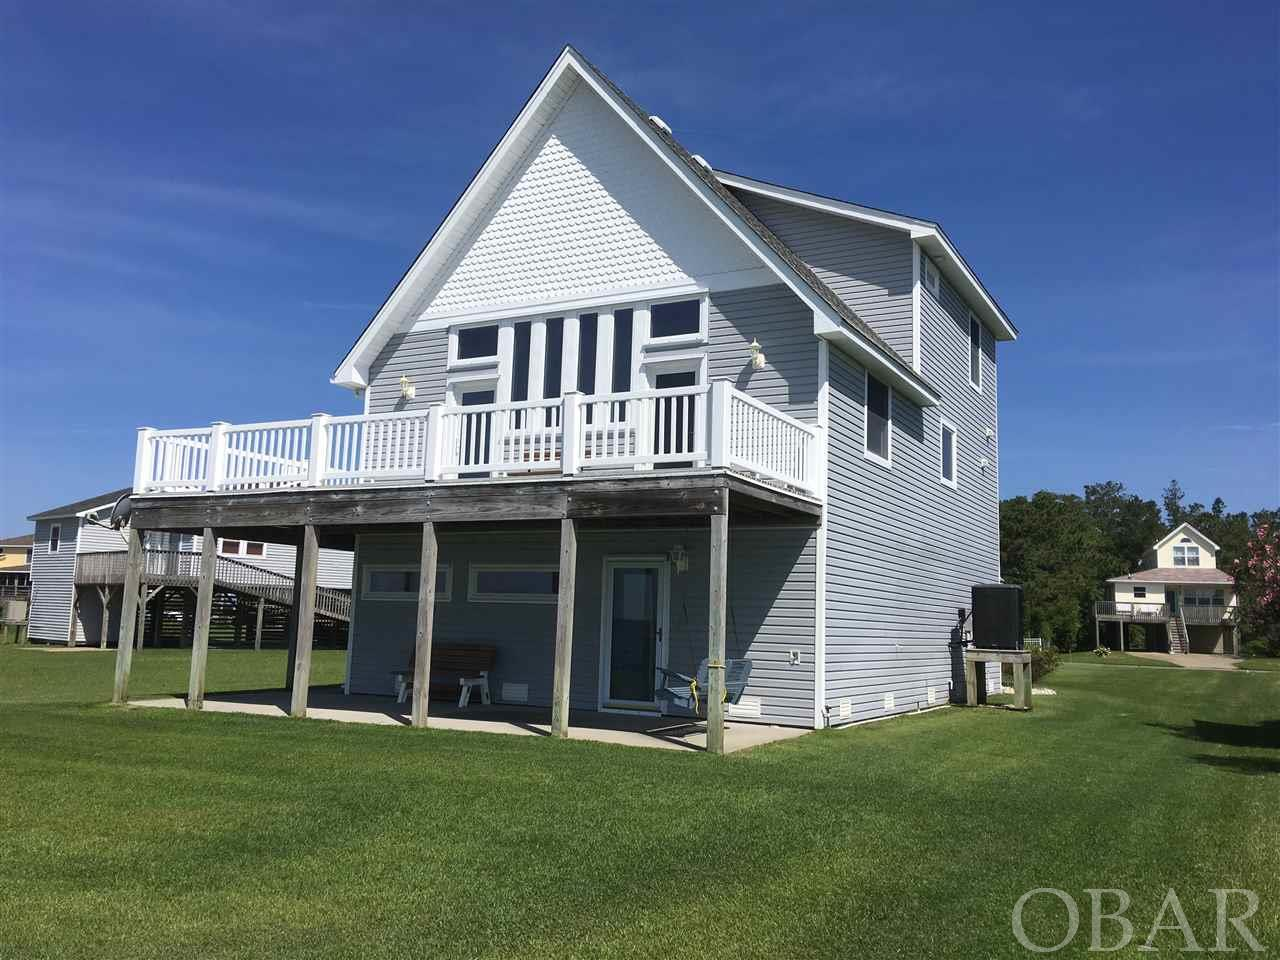 209 Rhodoms Drive,Kill Devil Hills,NC 27948,3 Bedrooms Bedrooms,2 BathroomsBathrooms,Residential,Rhodoms Drive,95203